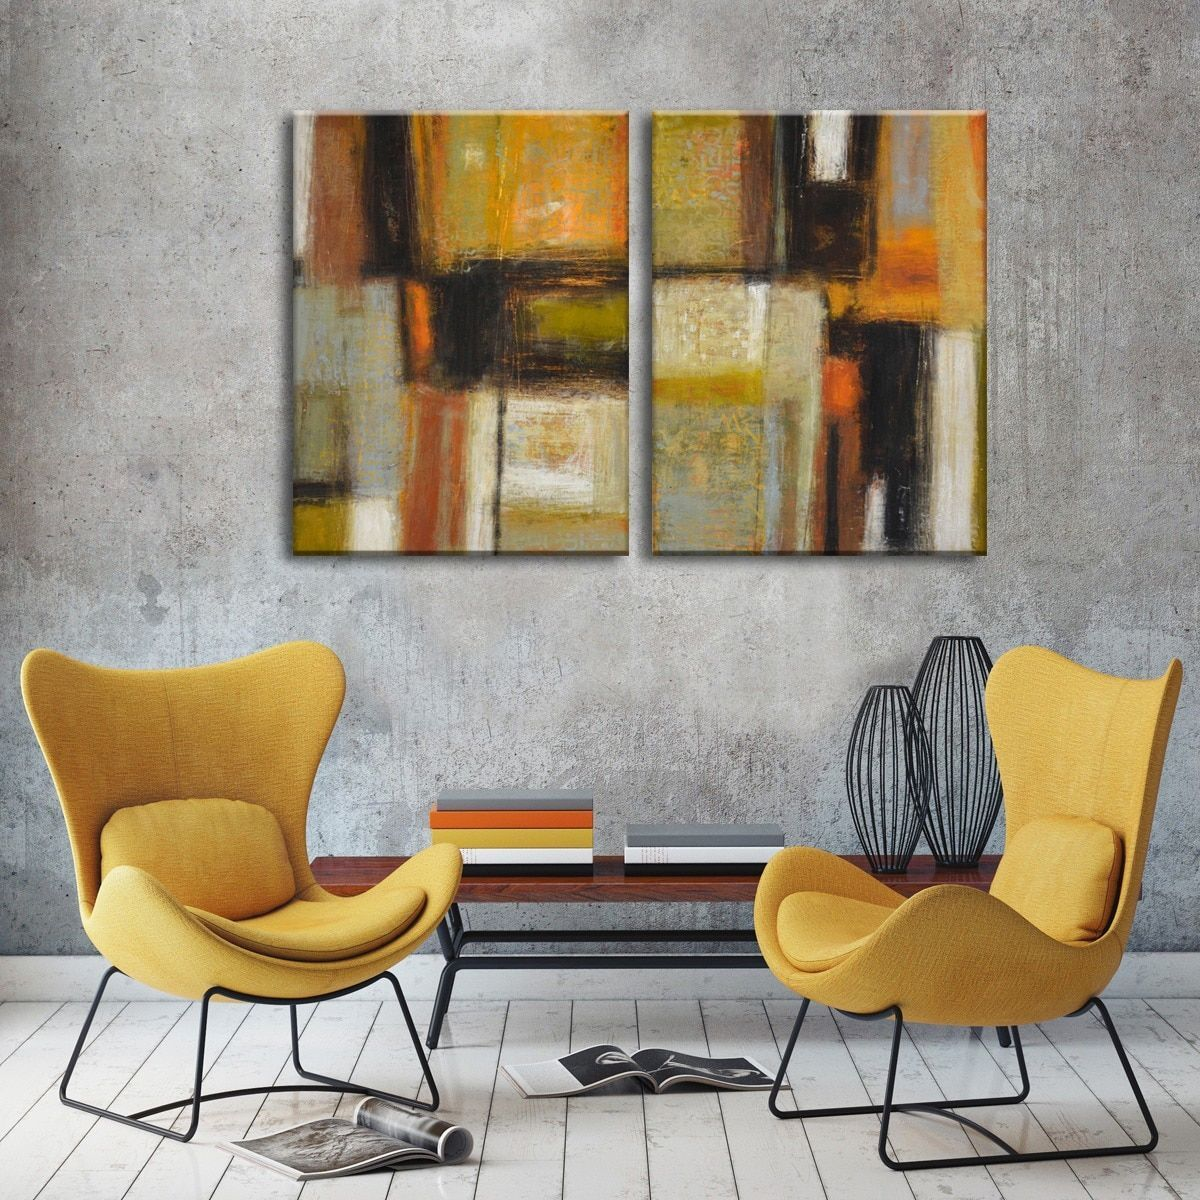 living room art prints%0A Add originality to your space with our range of digital giclee canvas prints  printed to the highest standards  Find the perfect piece to hang among our